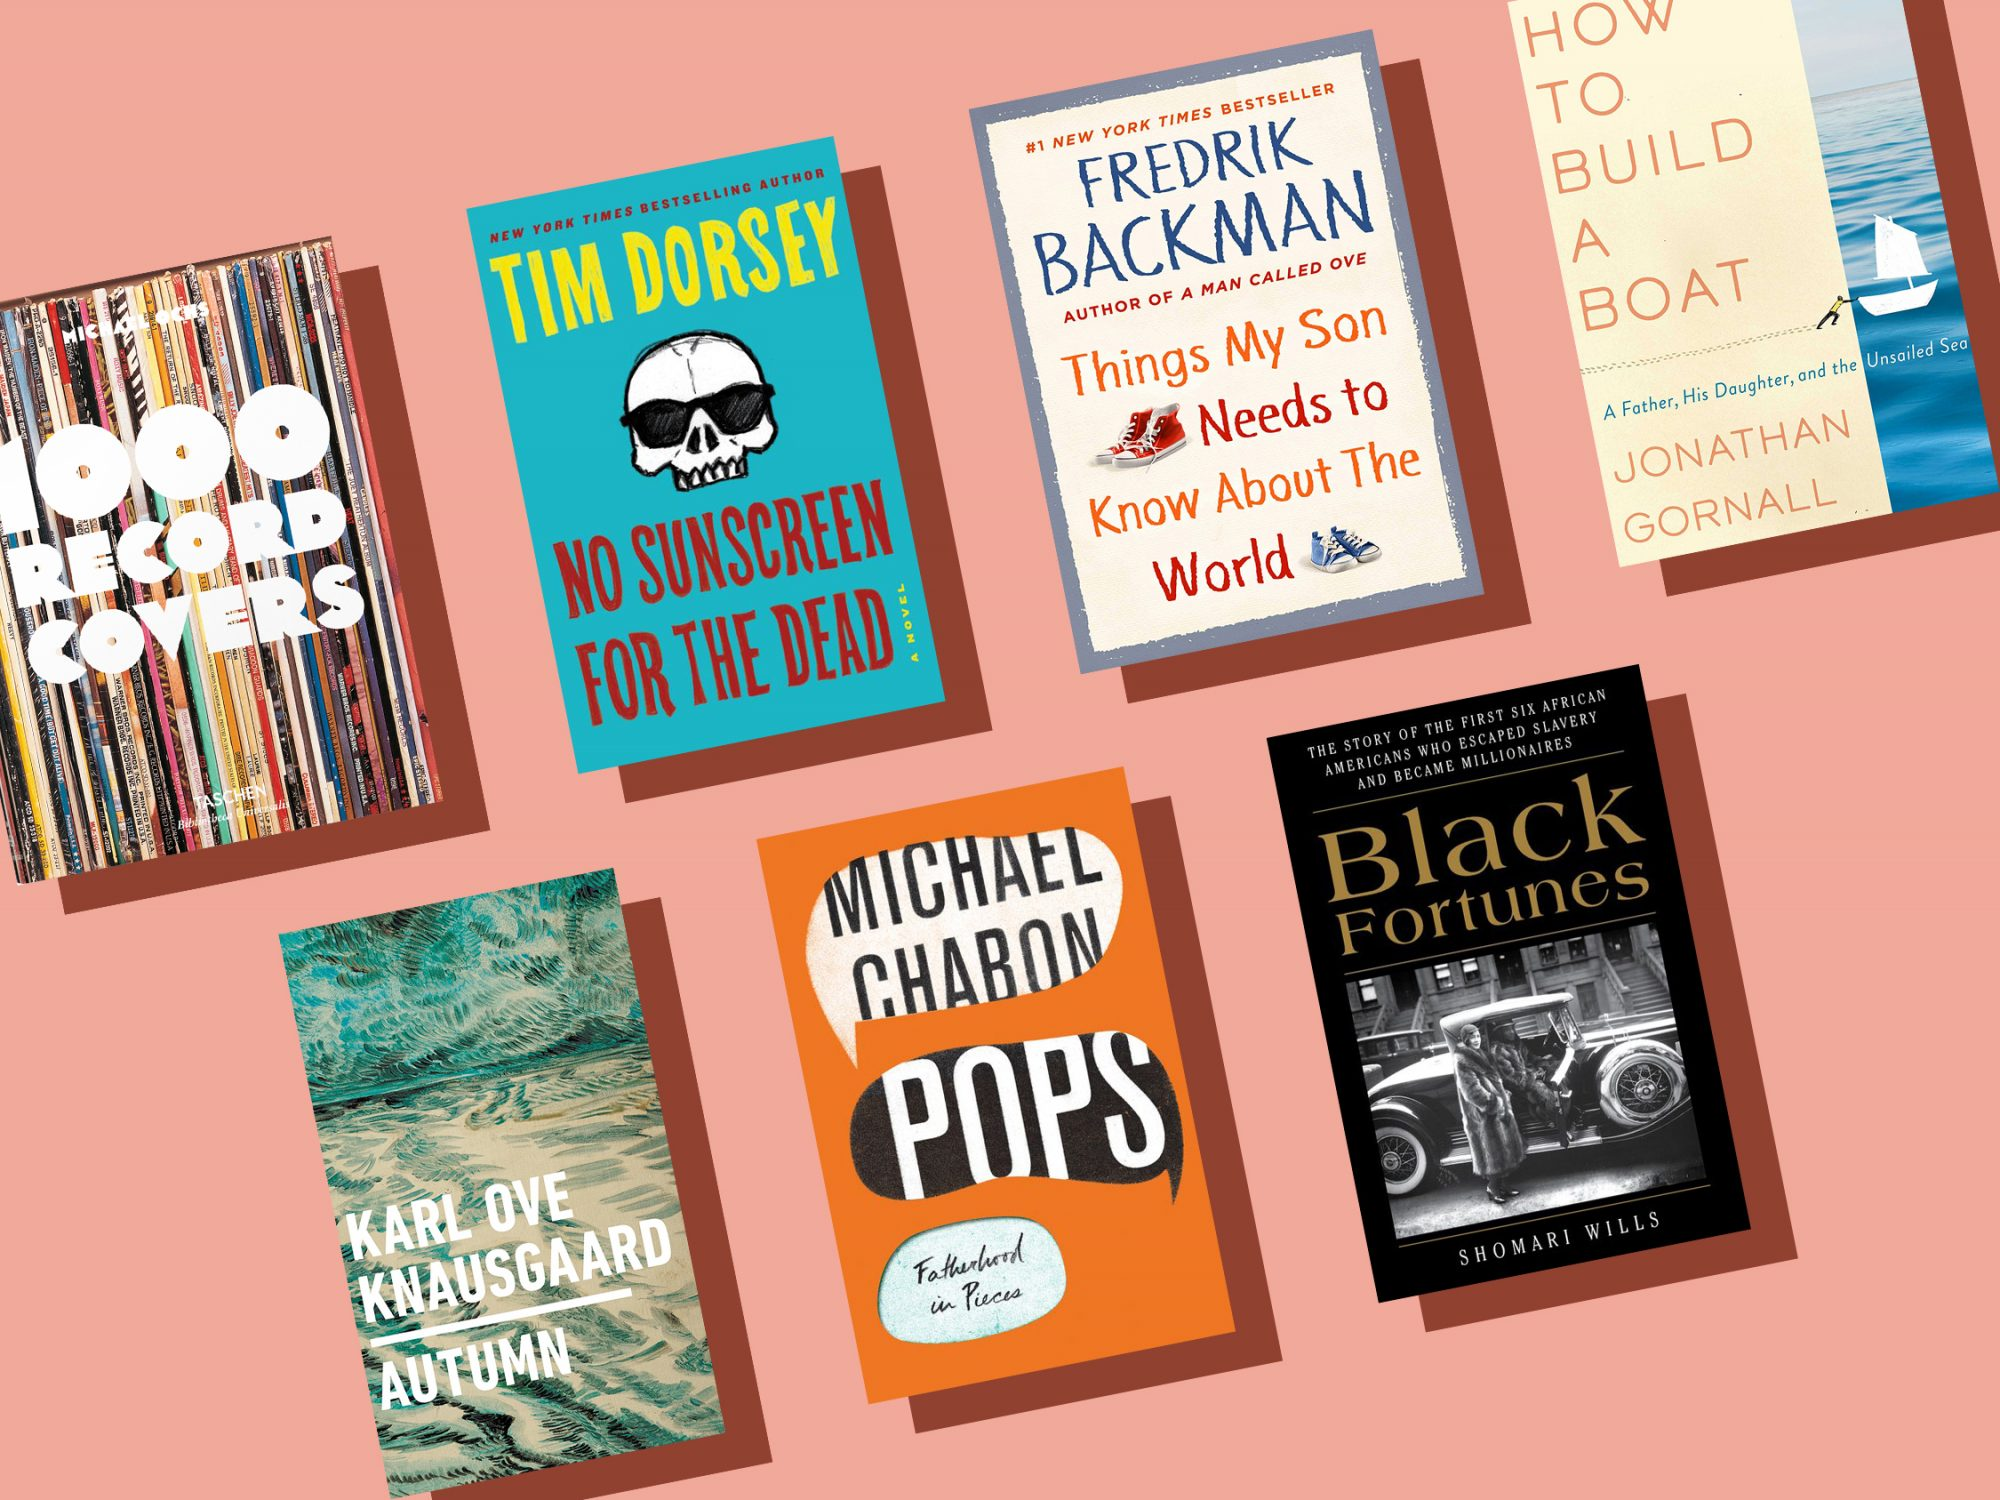 Books for dad for father's day - dad books